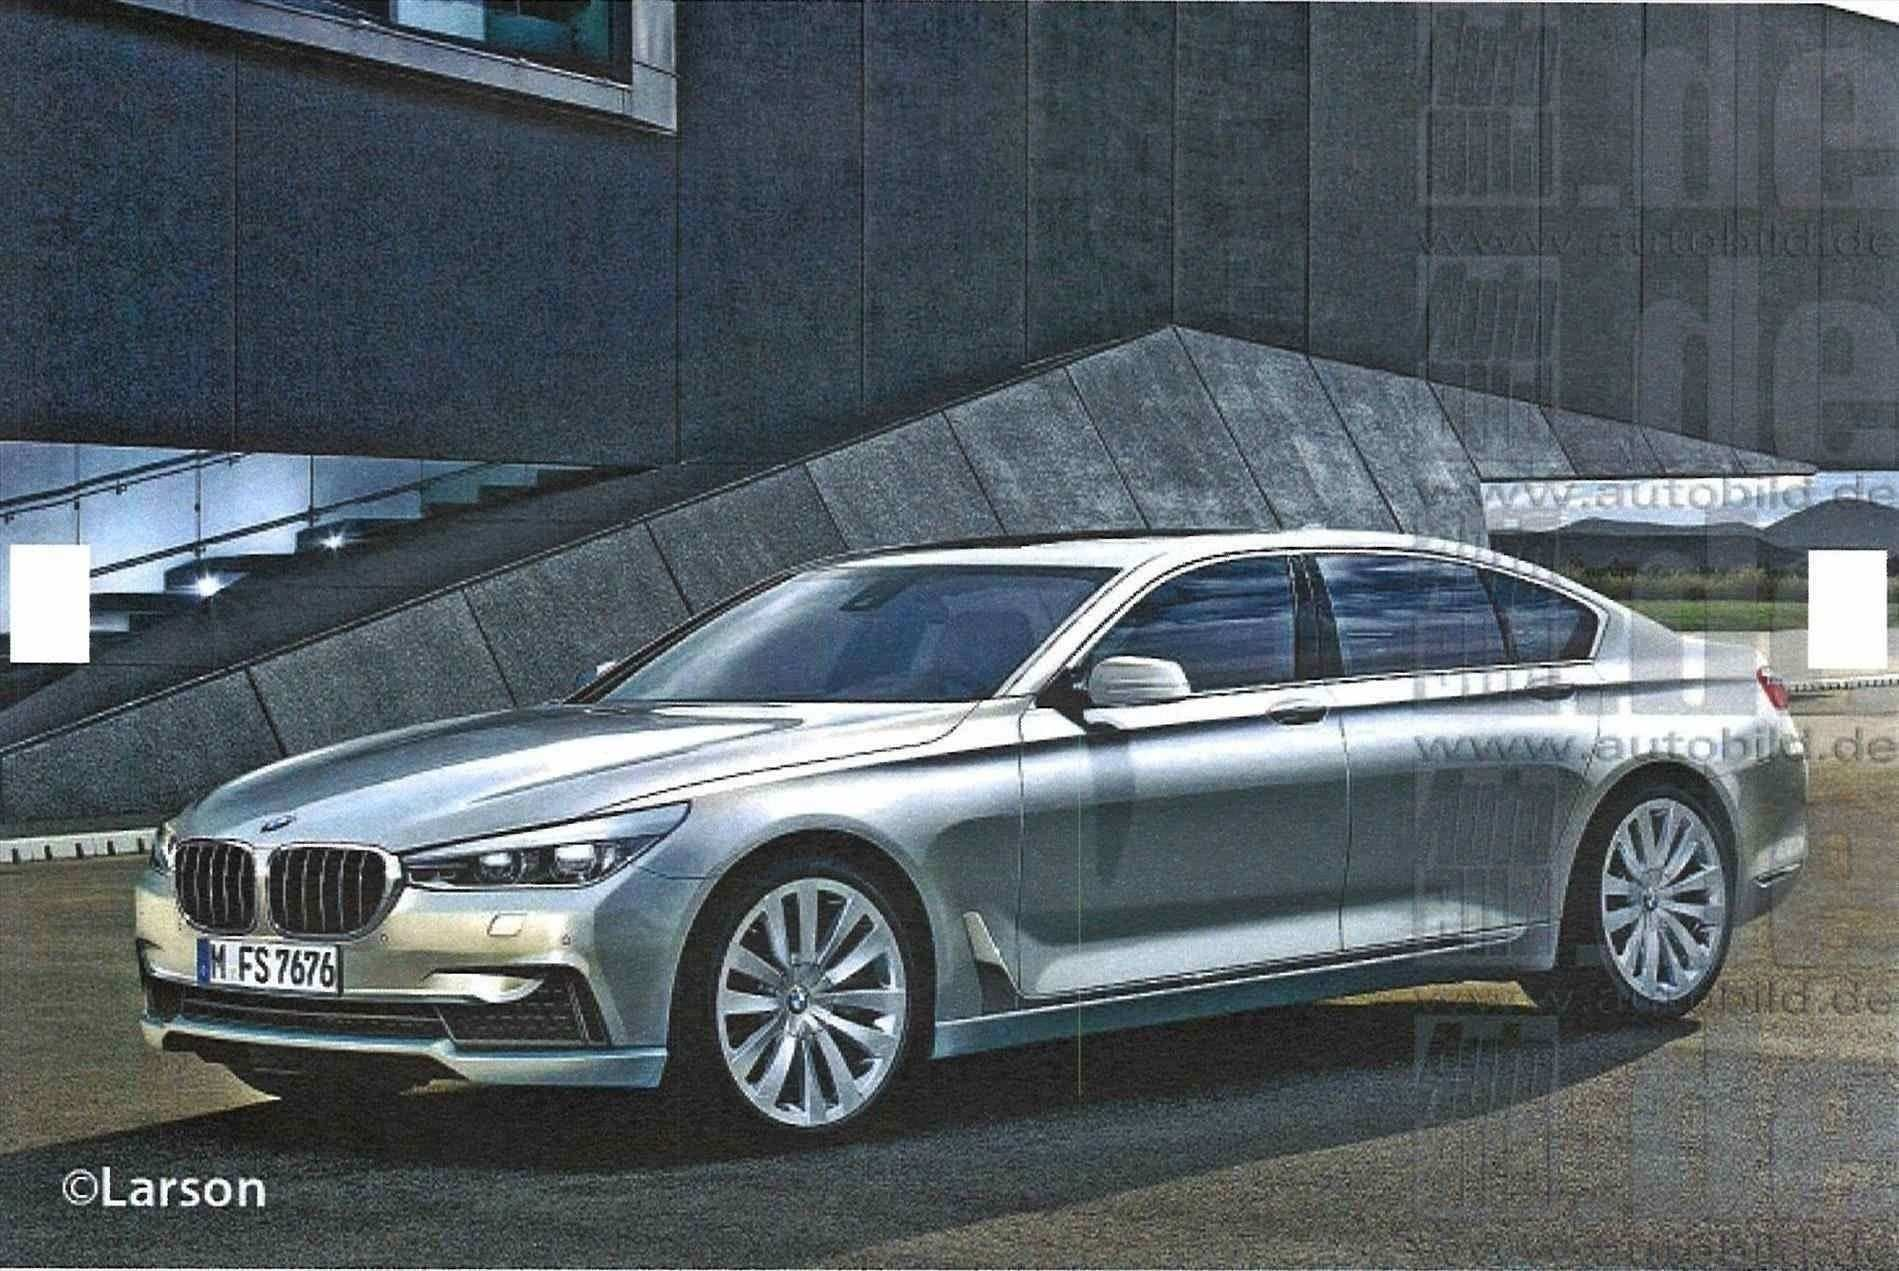 60 New 2020 BMW 7 Series Perfection New History with 2020 BMW 7 Series Perfection New